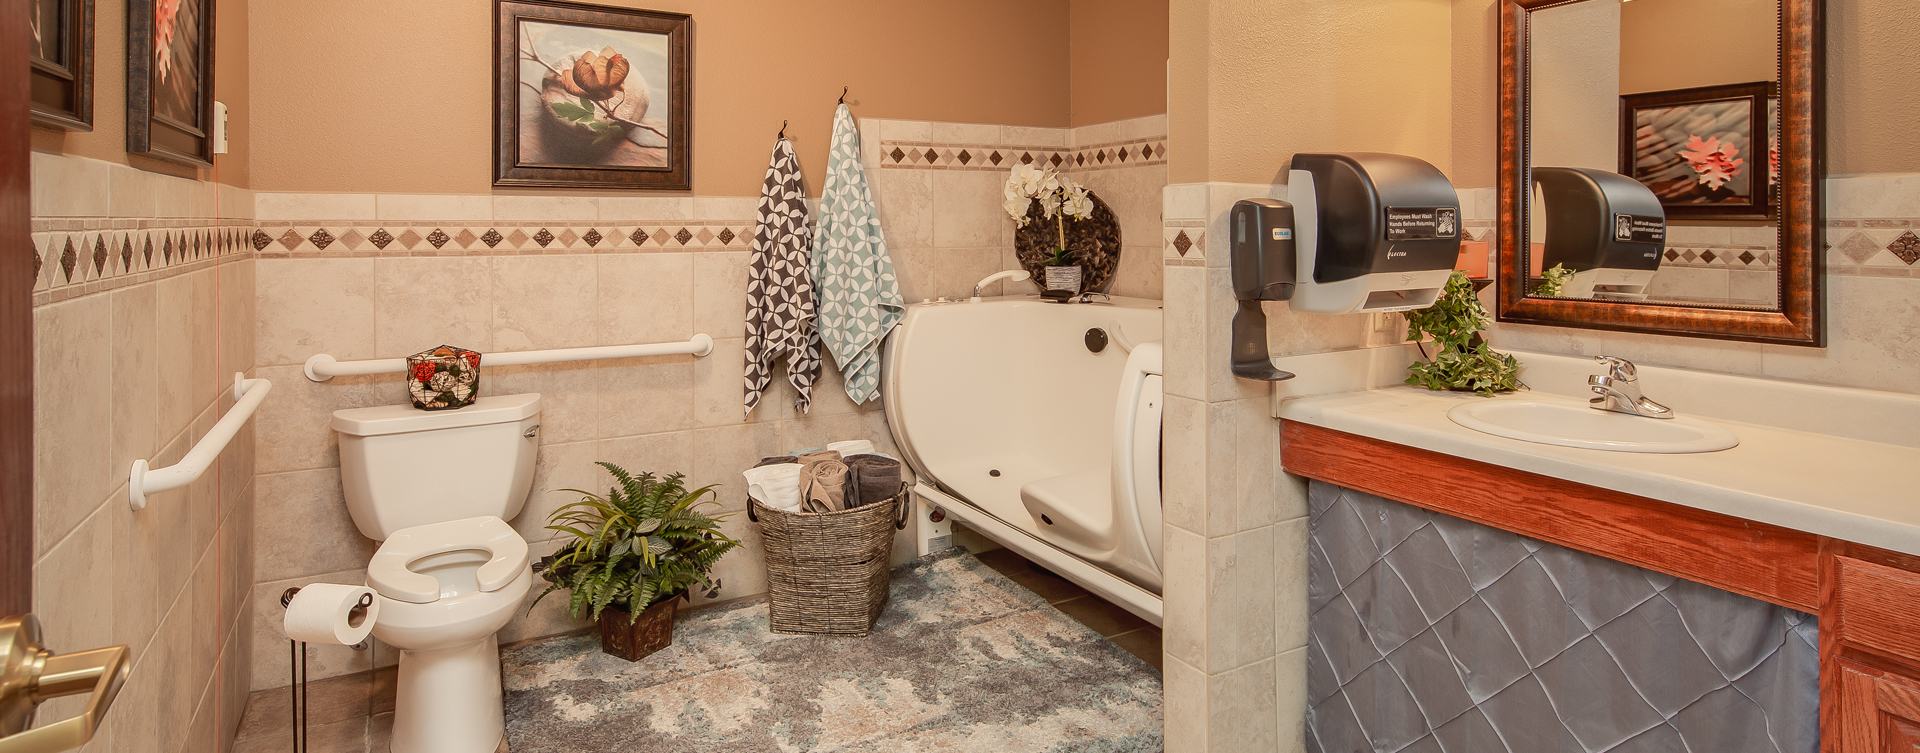 With an easy access design, our whirlpool allows you to enjoy a warm bath safely and comfortably at Bickford of Portage